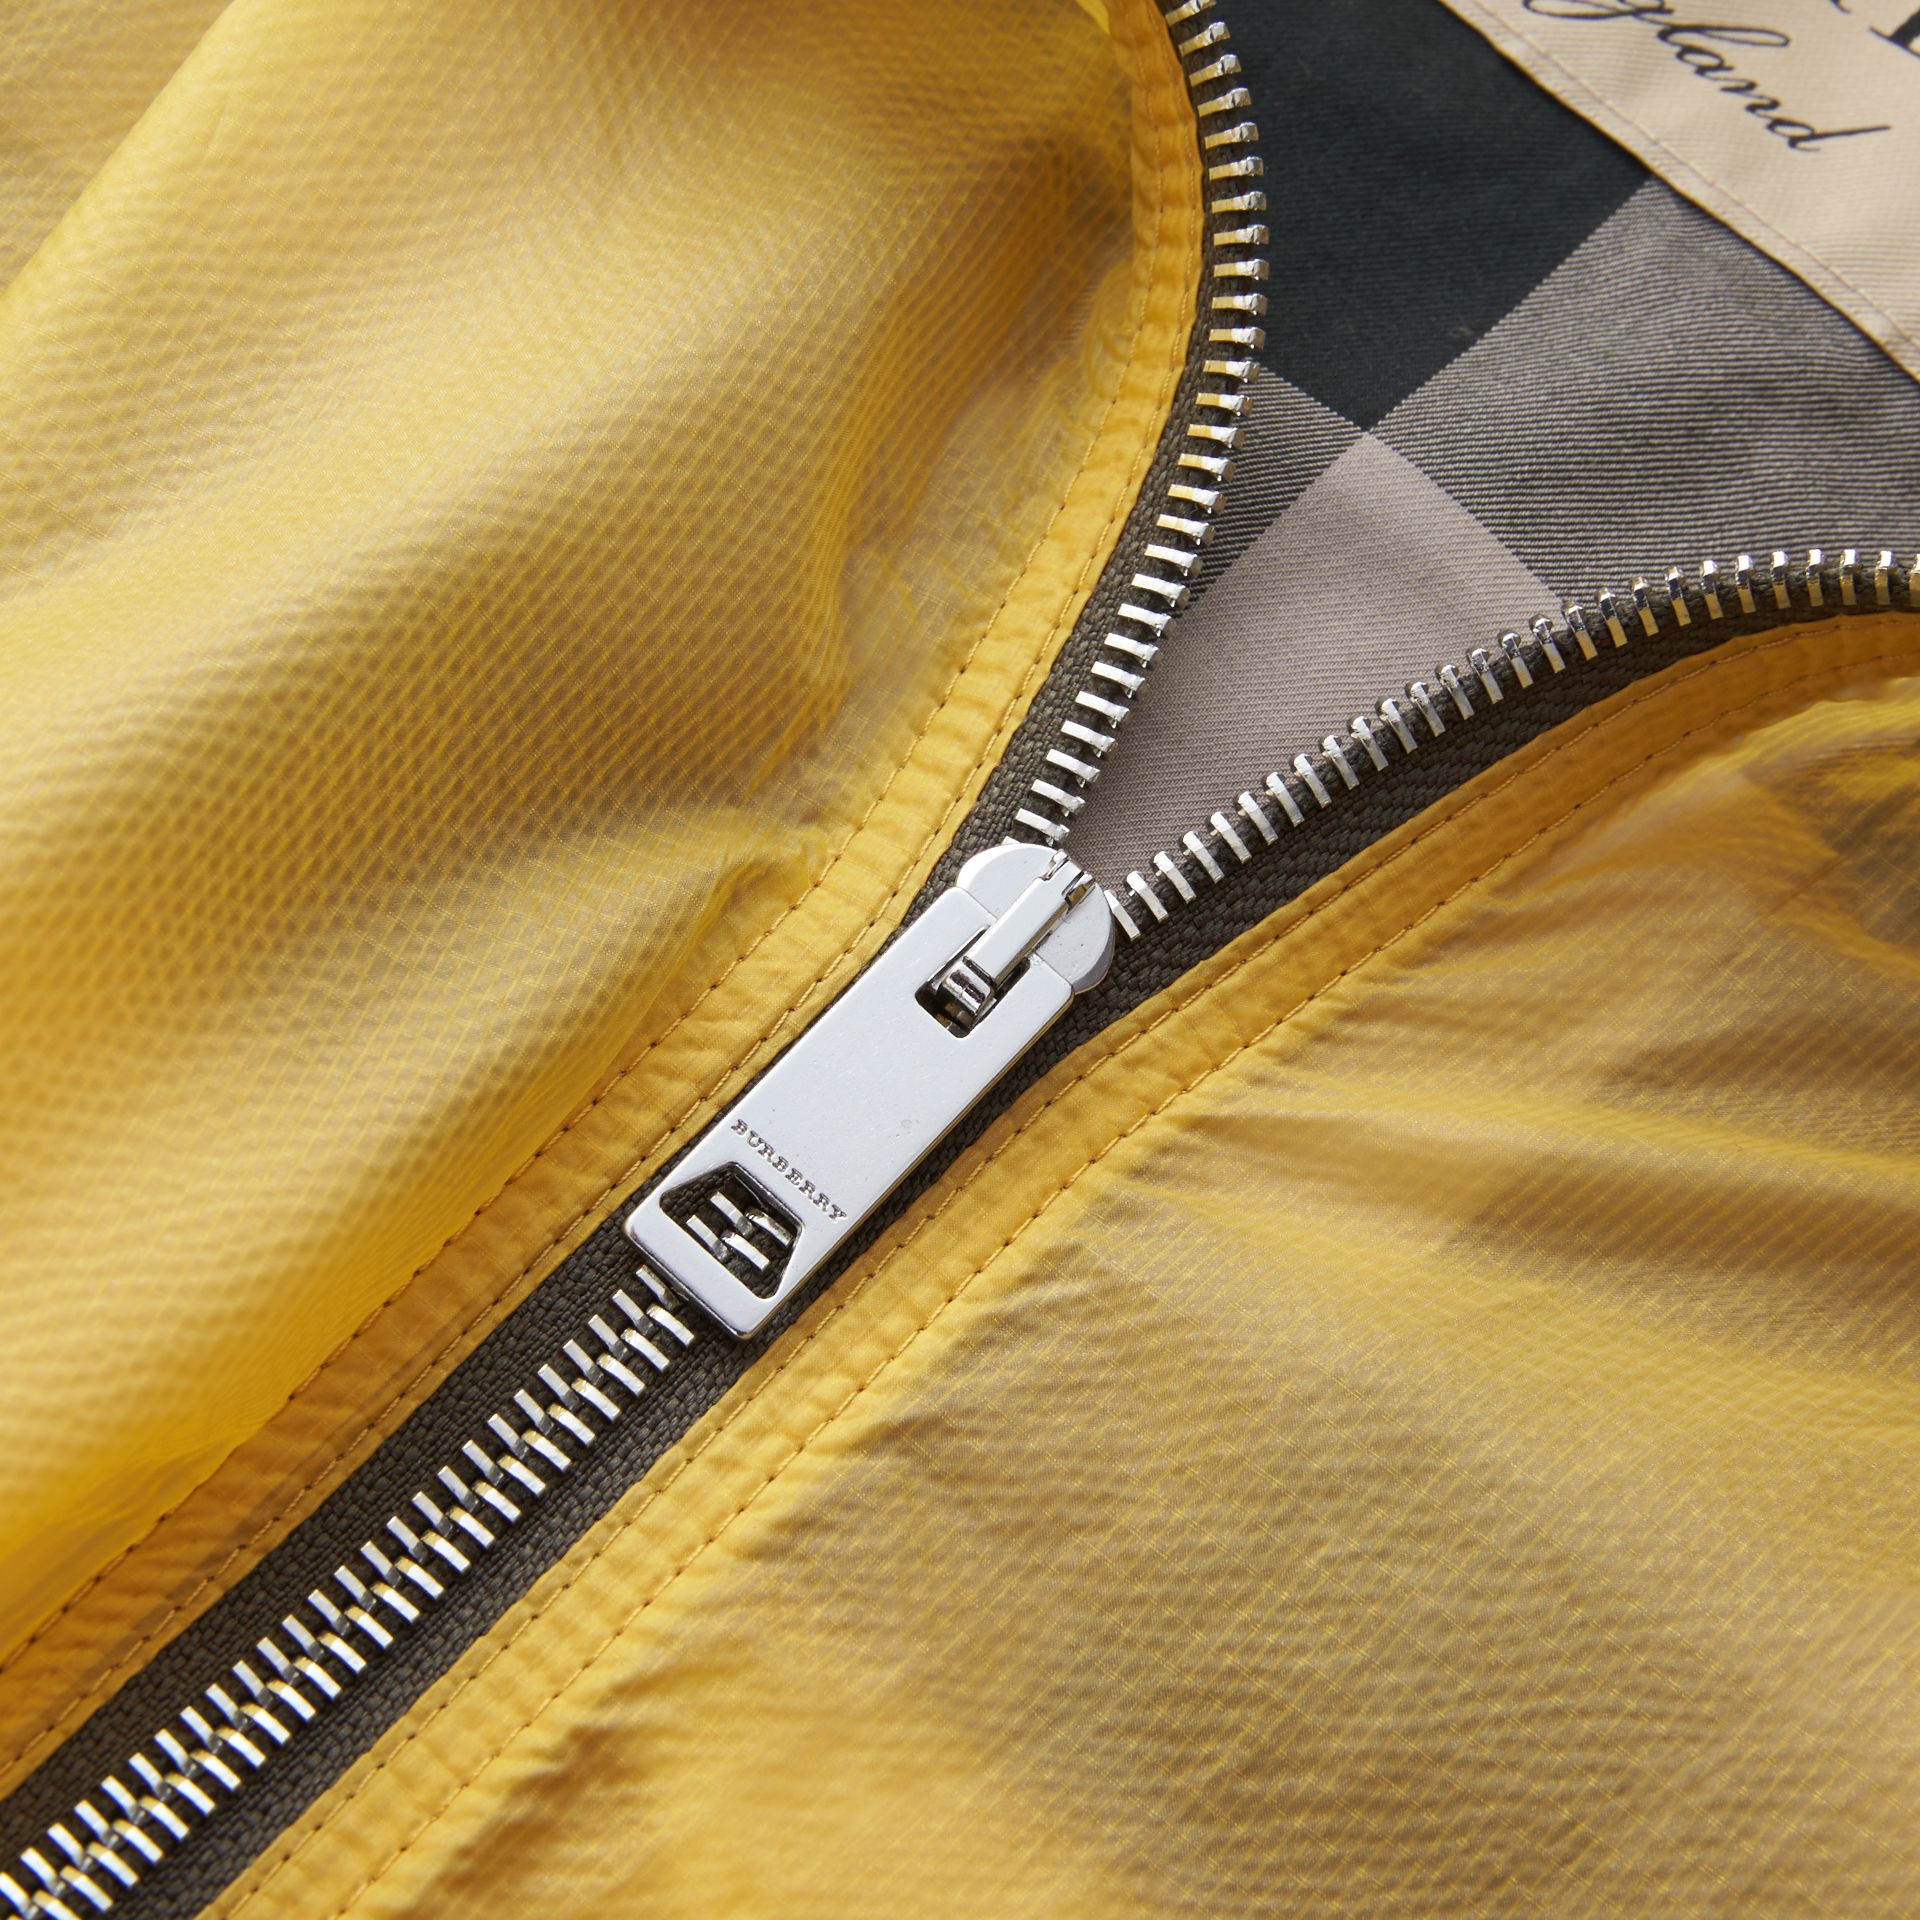 Hooded Super-lightweight Jacket in Pale Yellow - Men | Burberry - gallery image 2